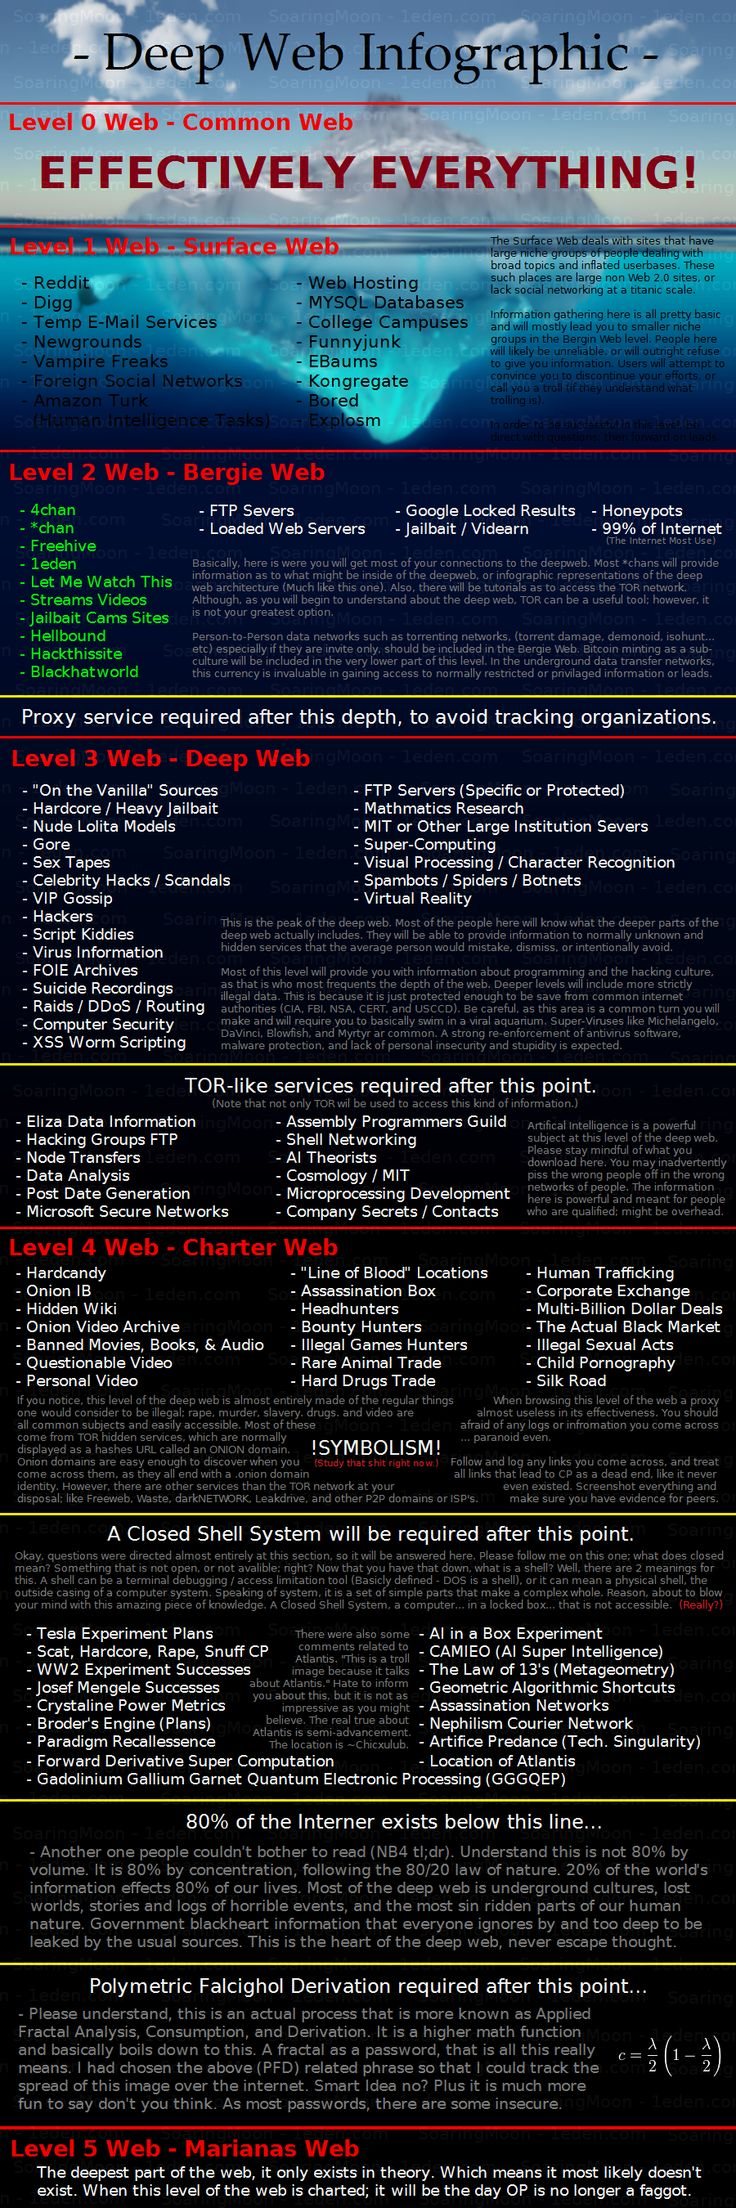 deep web infographic